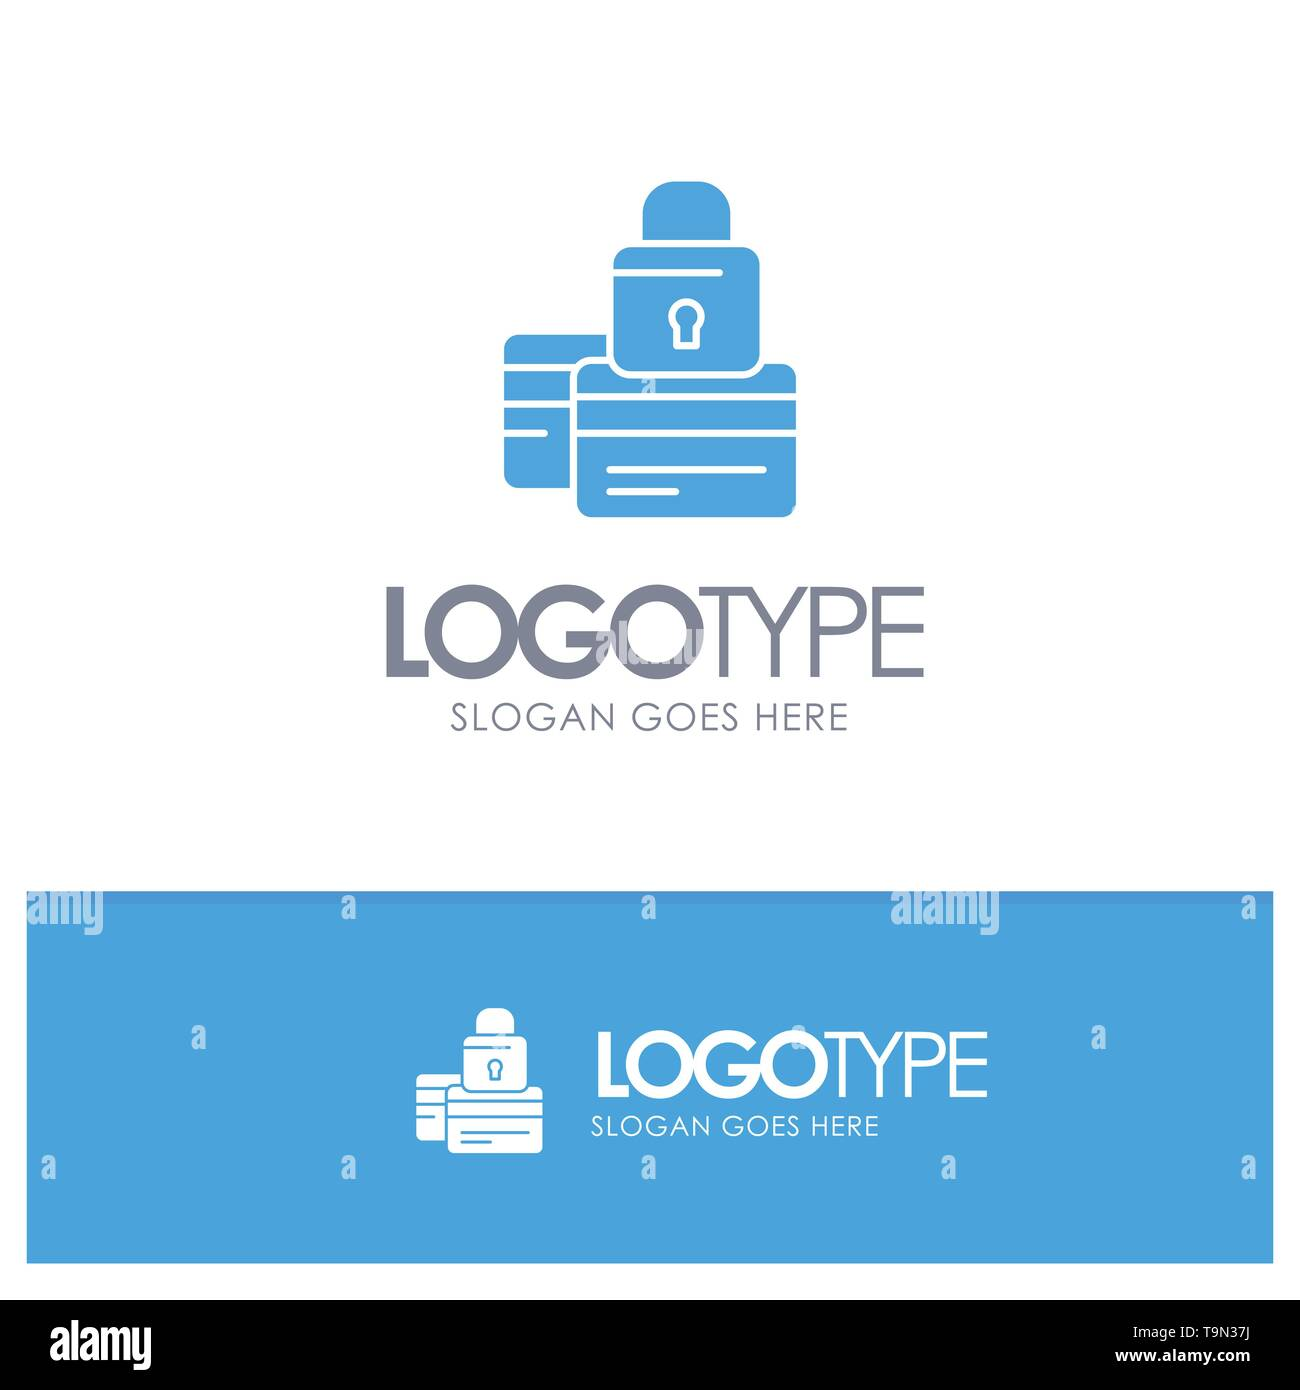 Banking, Card, Credit, Payment, Secure, Security Blue Solid Logo with place for tagline - Stock Image